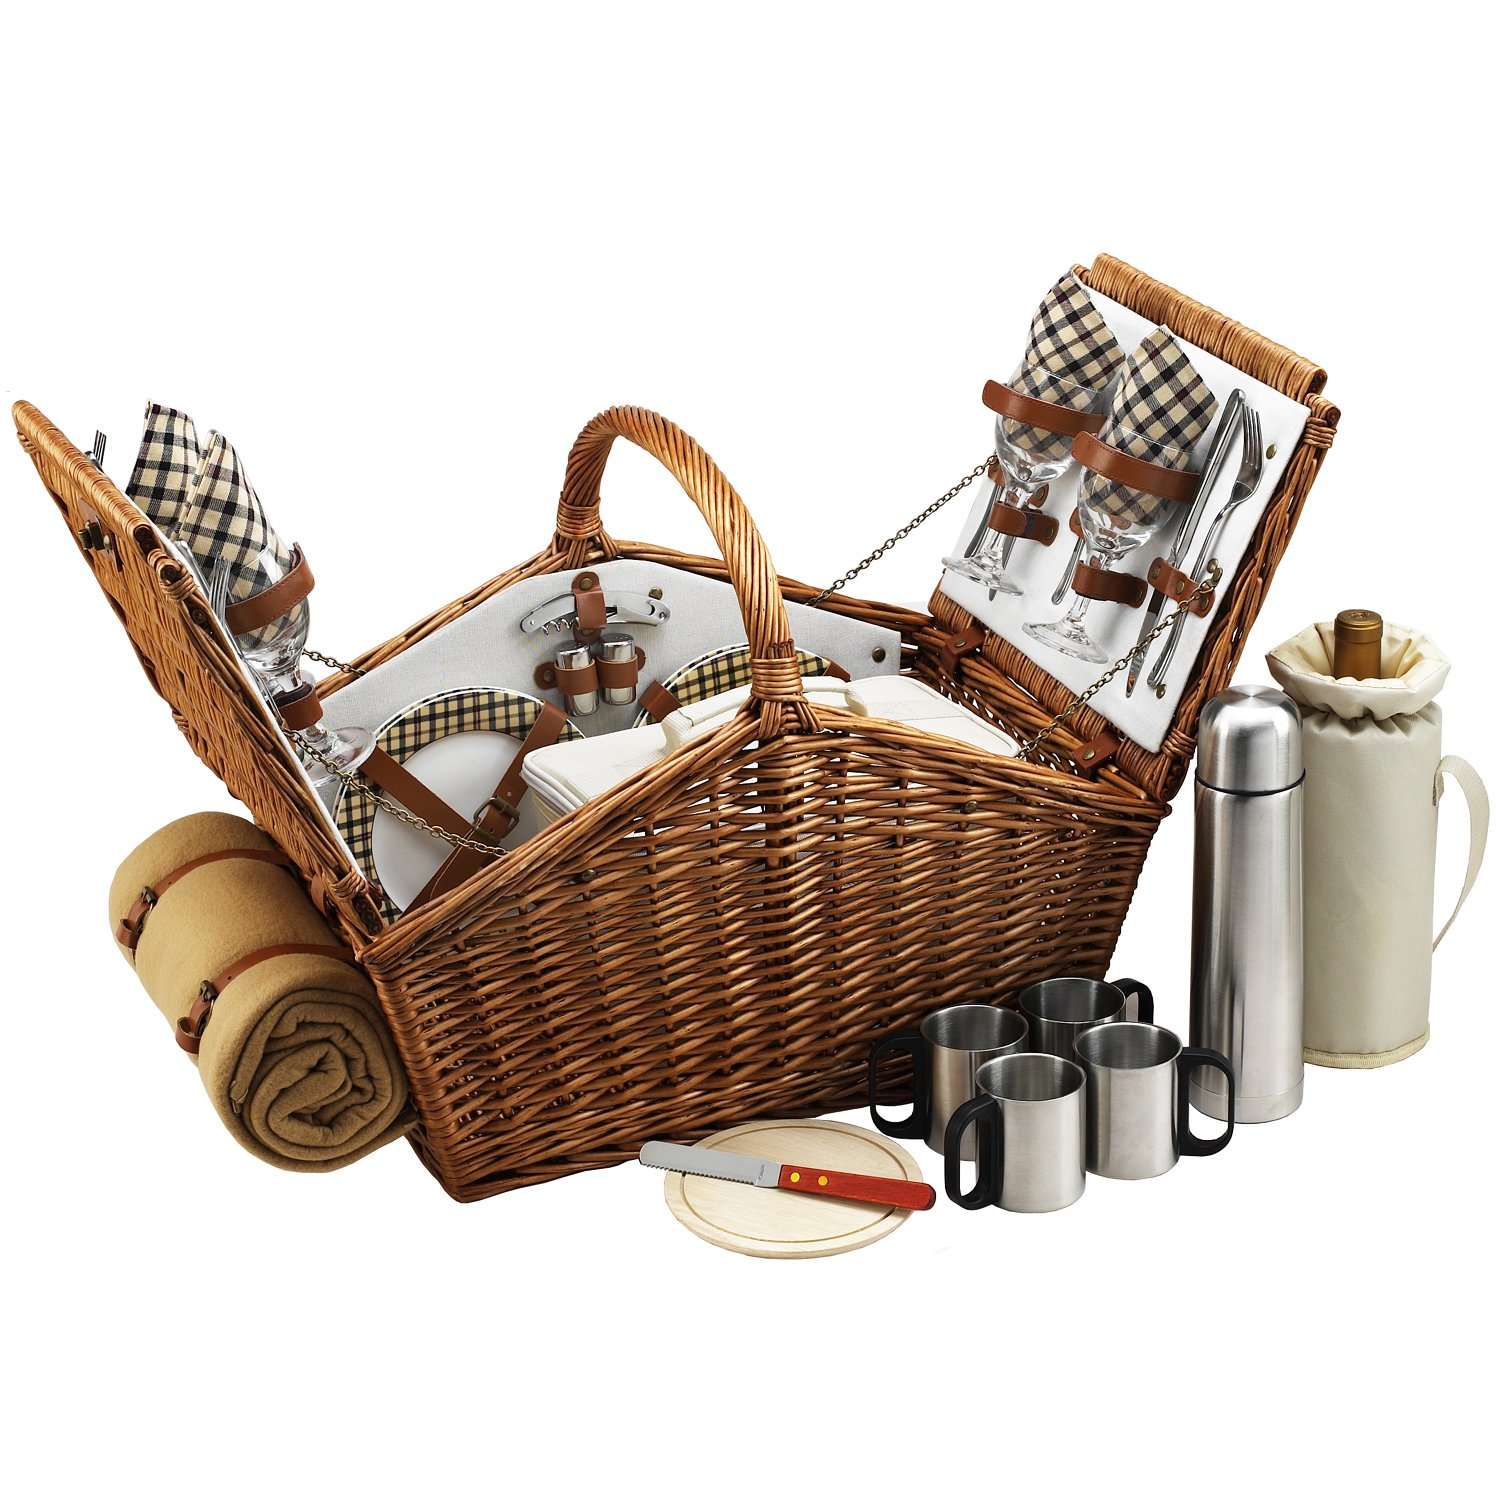 Picnic at Ascot Huntsman English-Style Willow Picnic Basket with Service for 4,  Coffee Set and Blanket - London Plaid